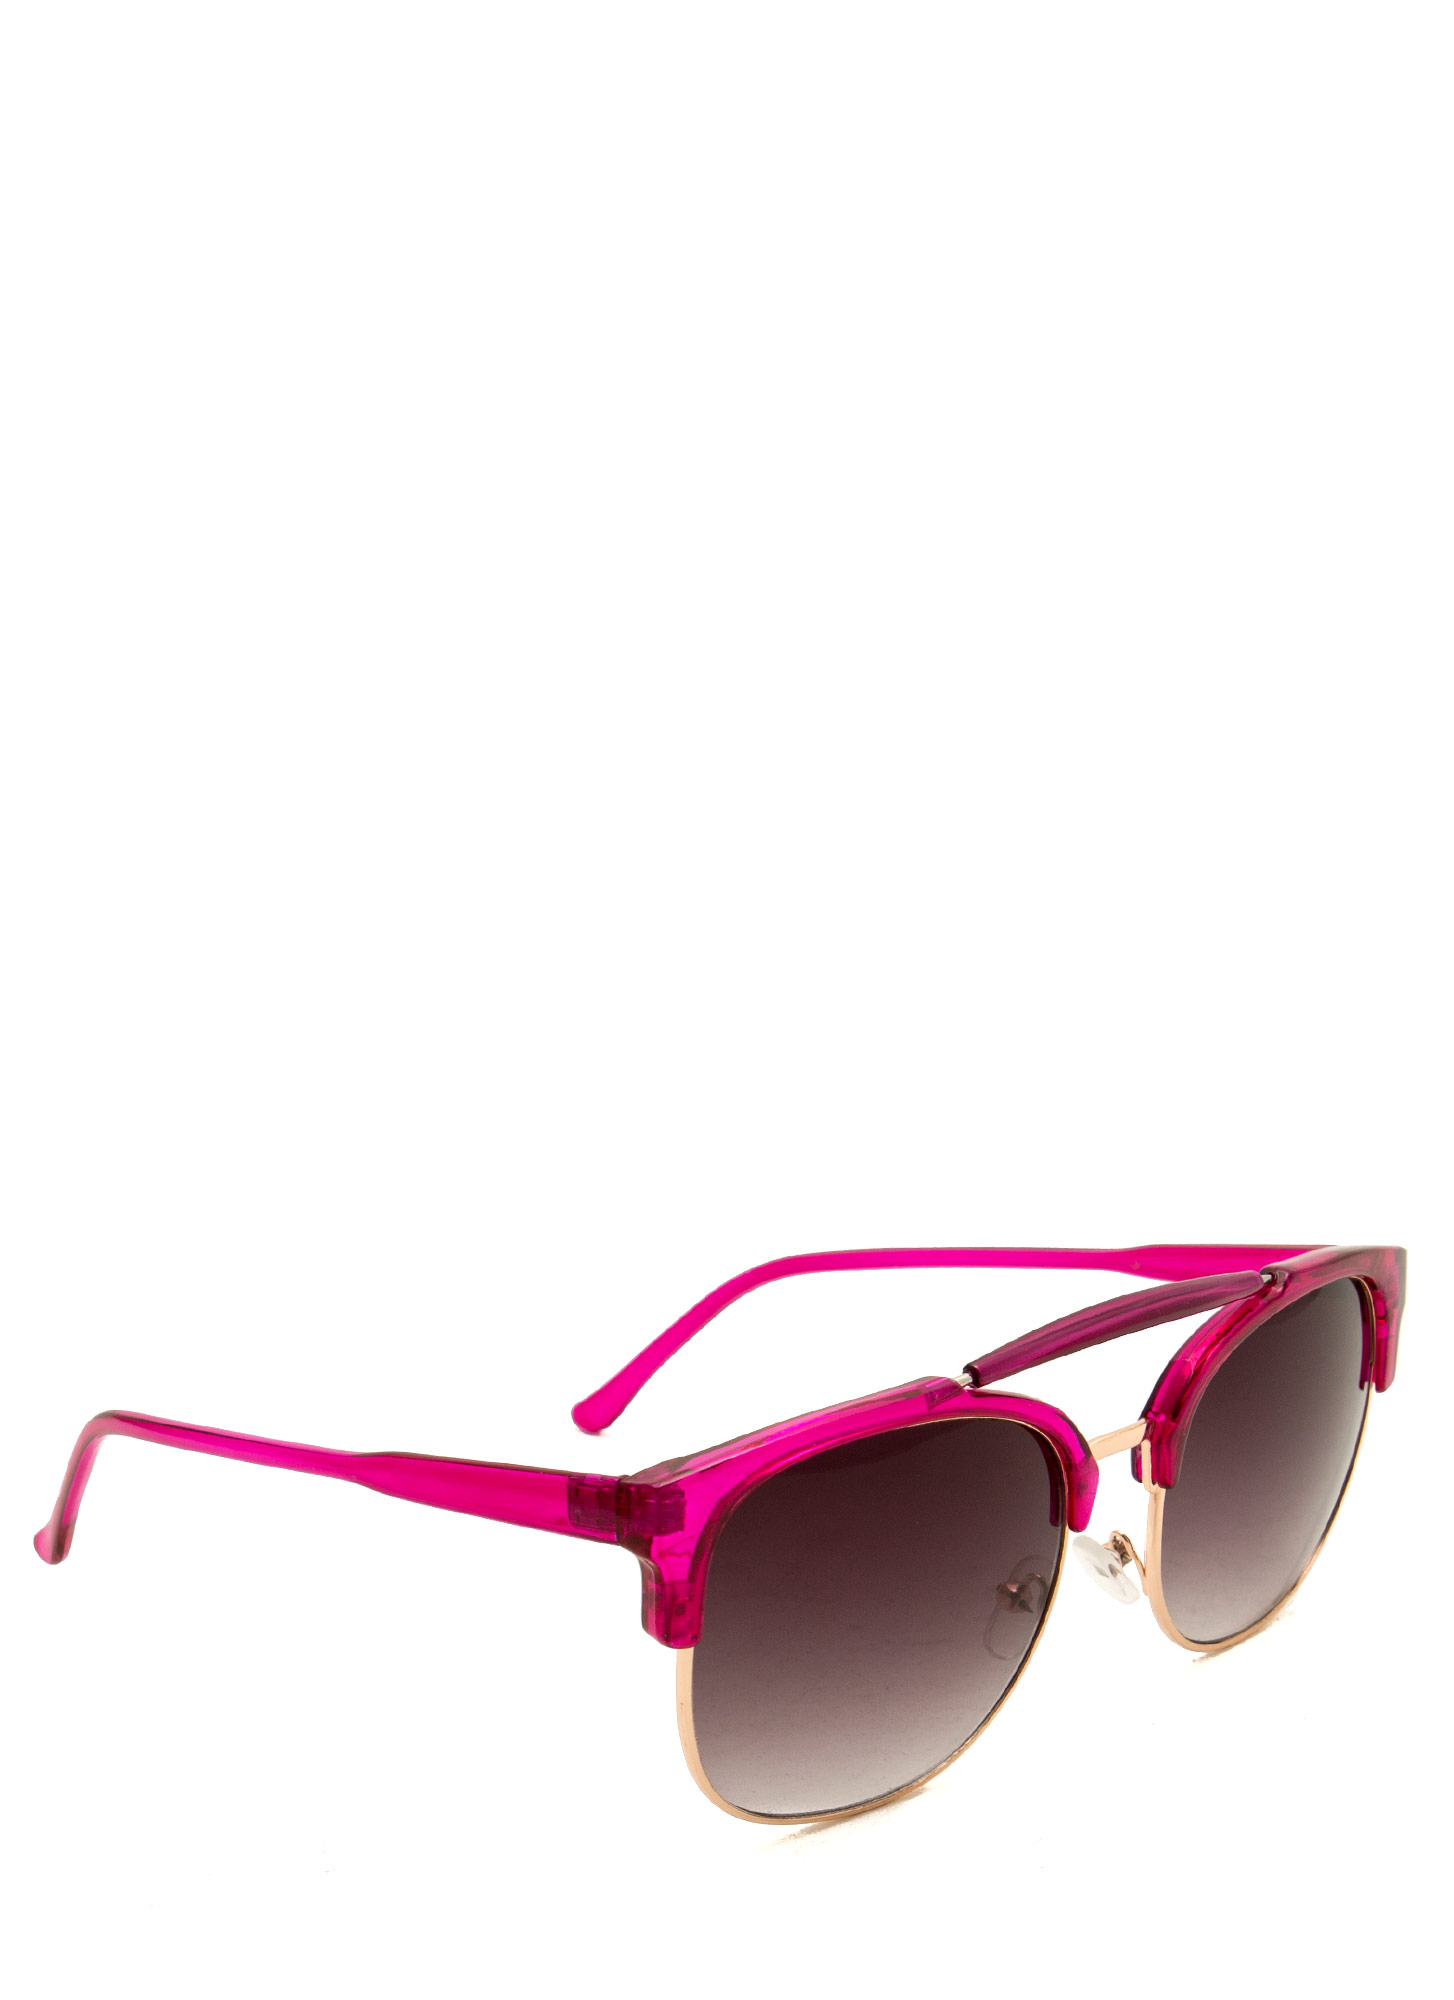 Top Bar Clubmaster Sunglasses FUCHGOLD